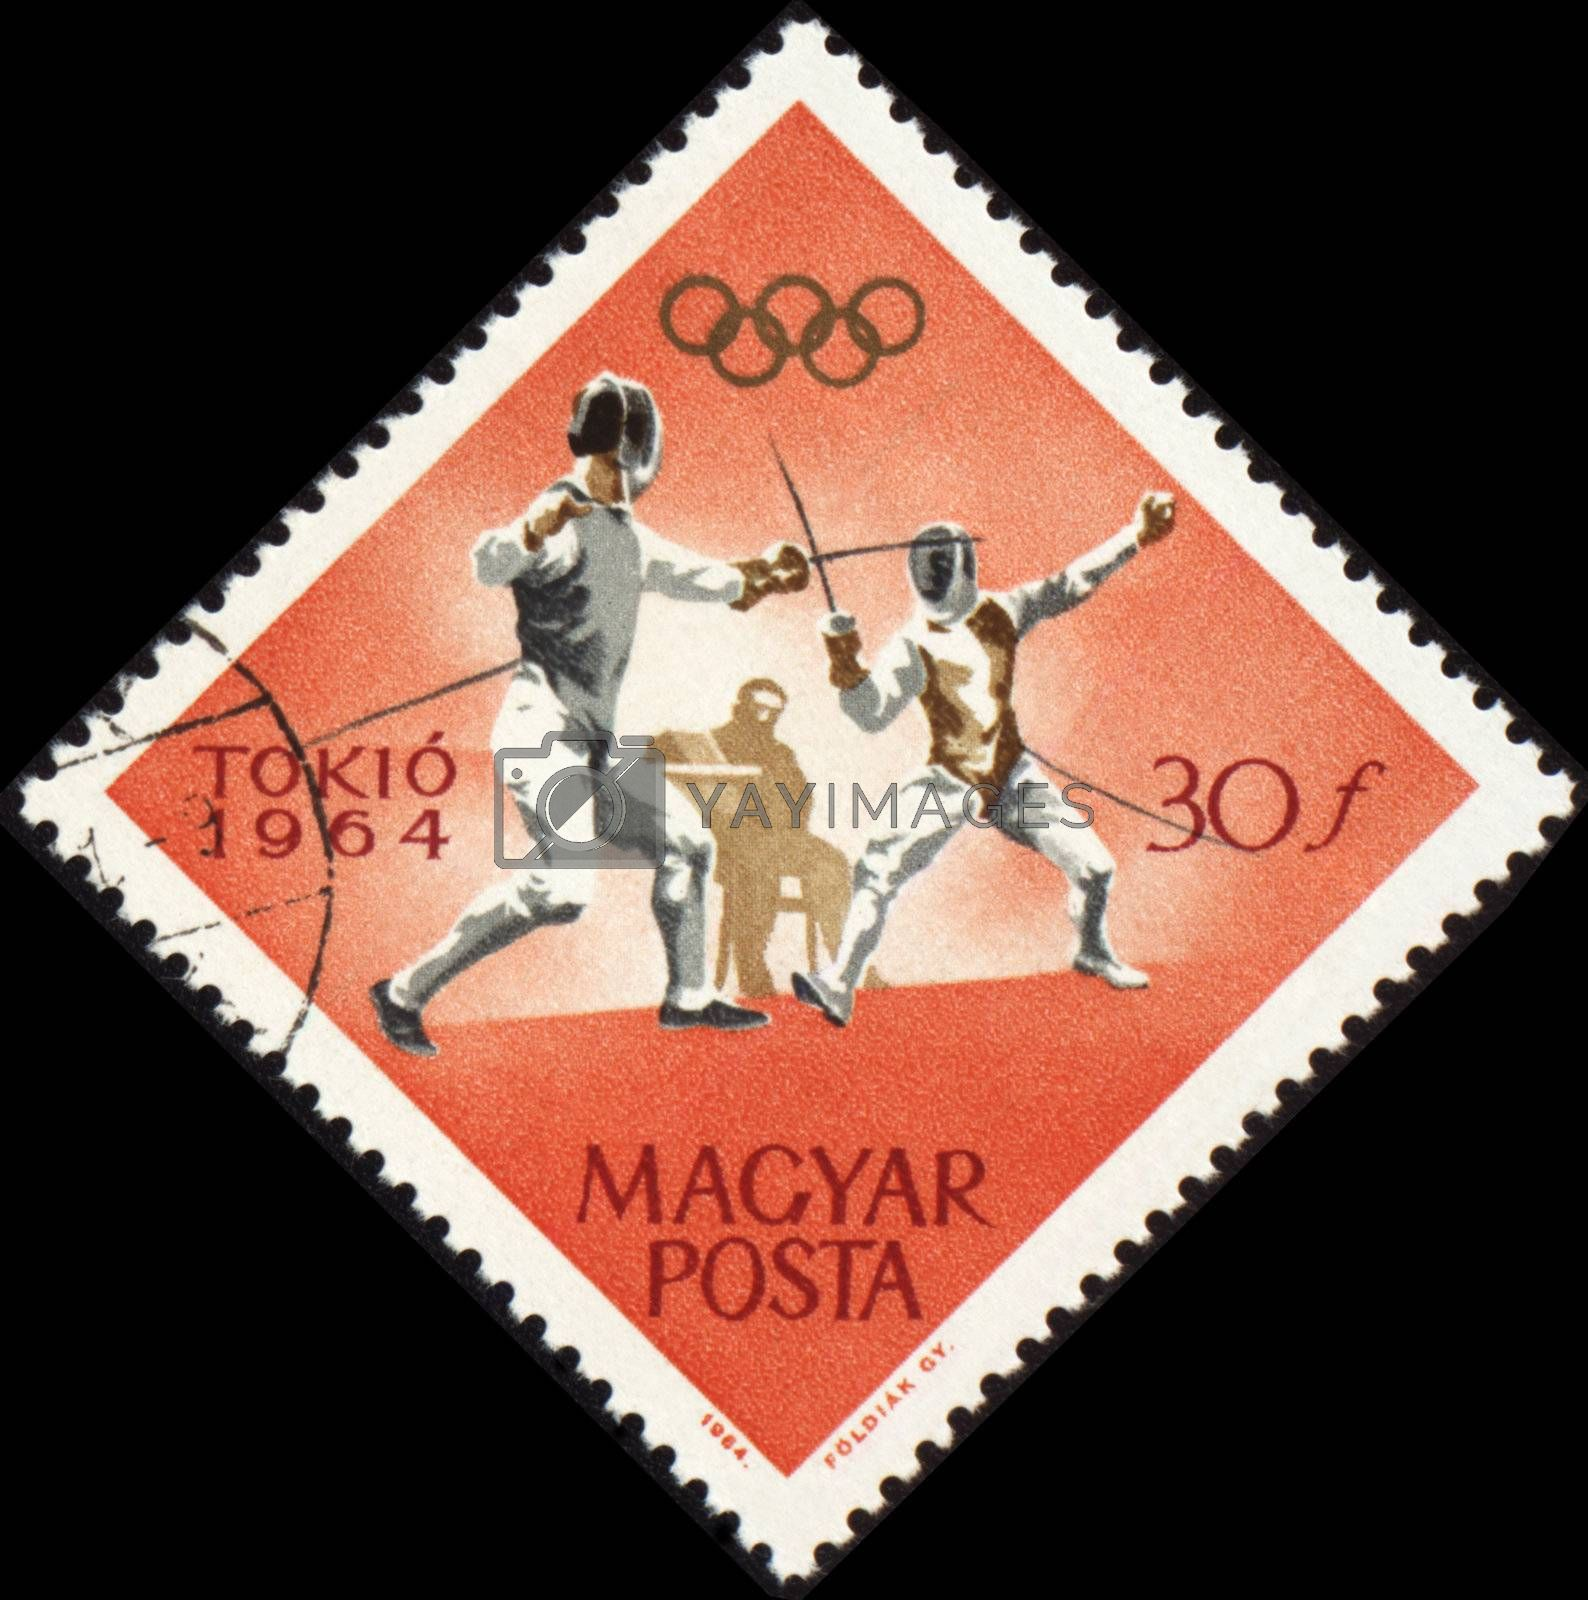 HUNGARY - CIRCA 1964: A post stamp printed in Hungary shows fencing, devoted to Olympic games in Tokio, series, circa 1964